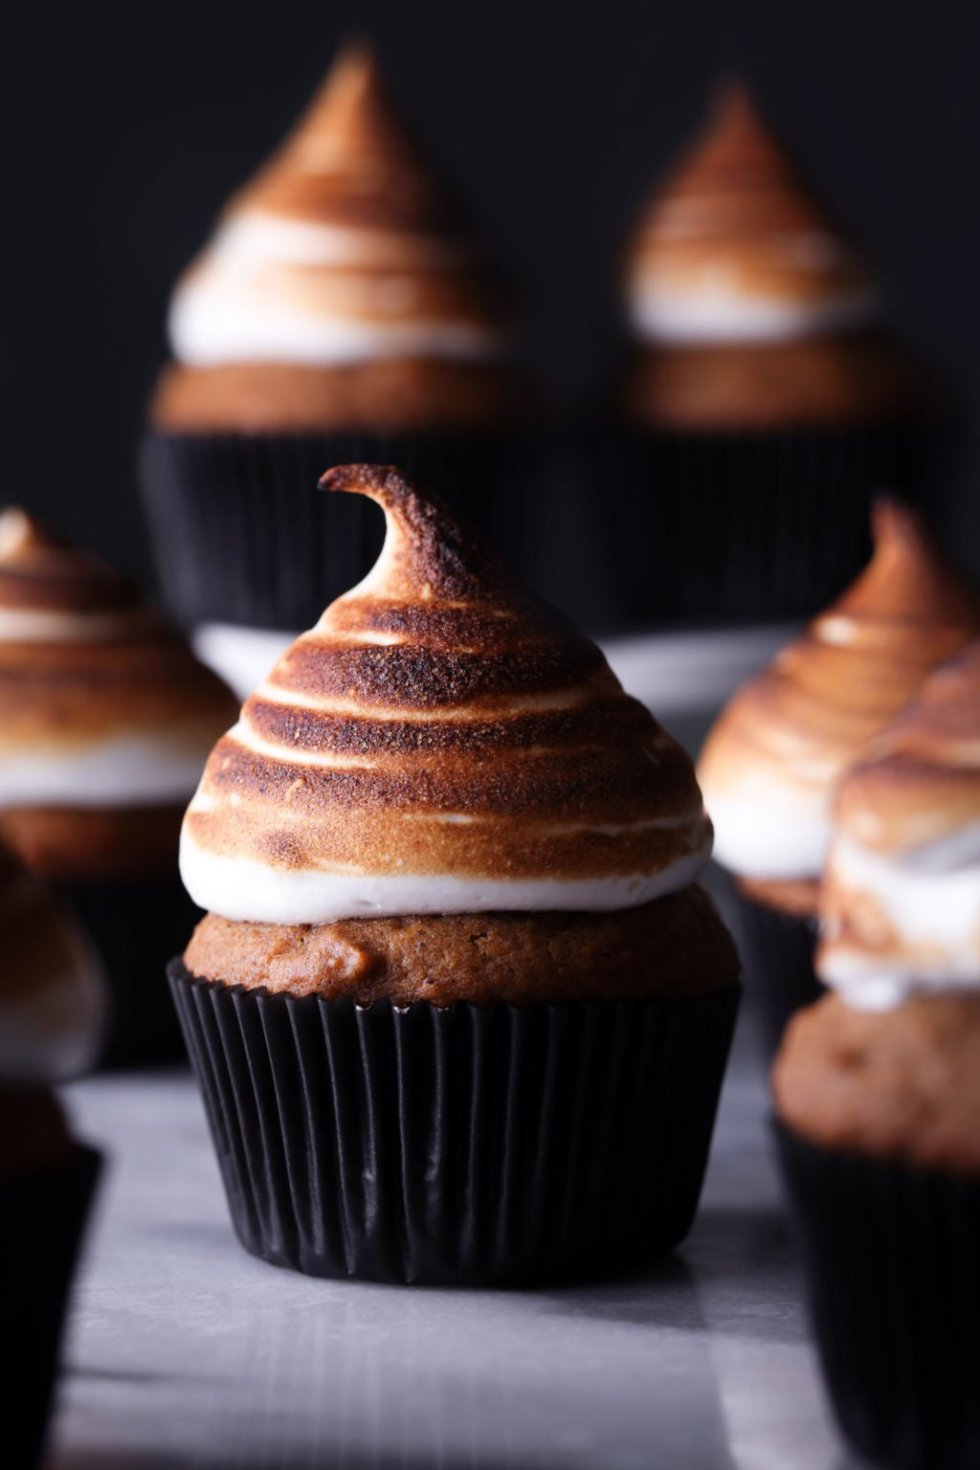 Sweet Potato Cupcakes with Toasted Marshmallow Meringue | Dairy and refined sugar free with a gluten-free alternative!